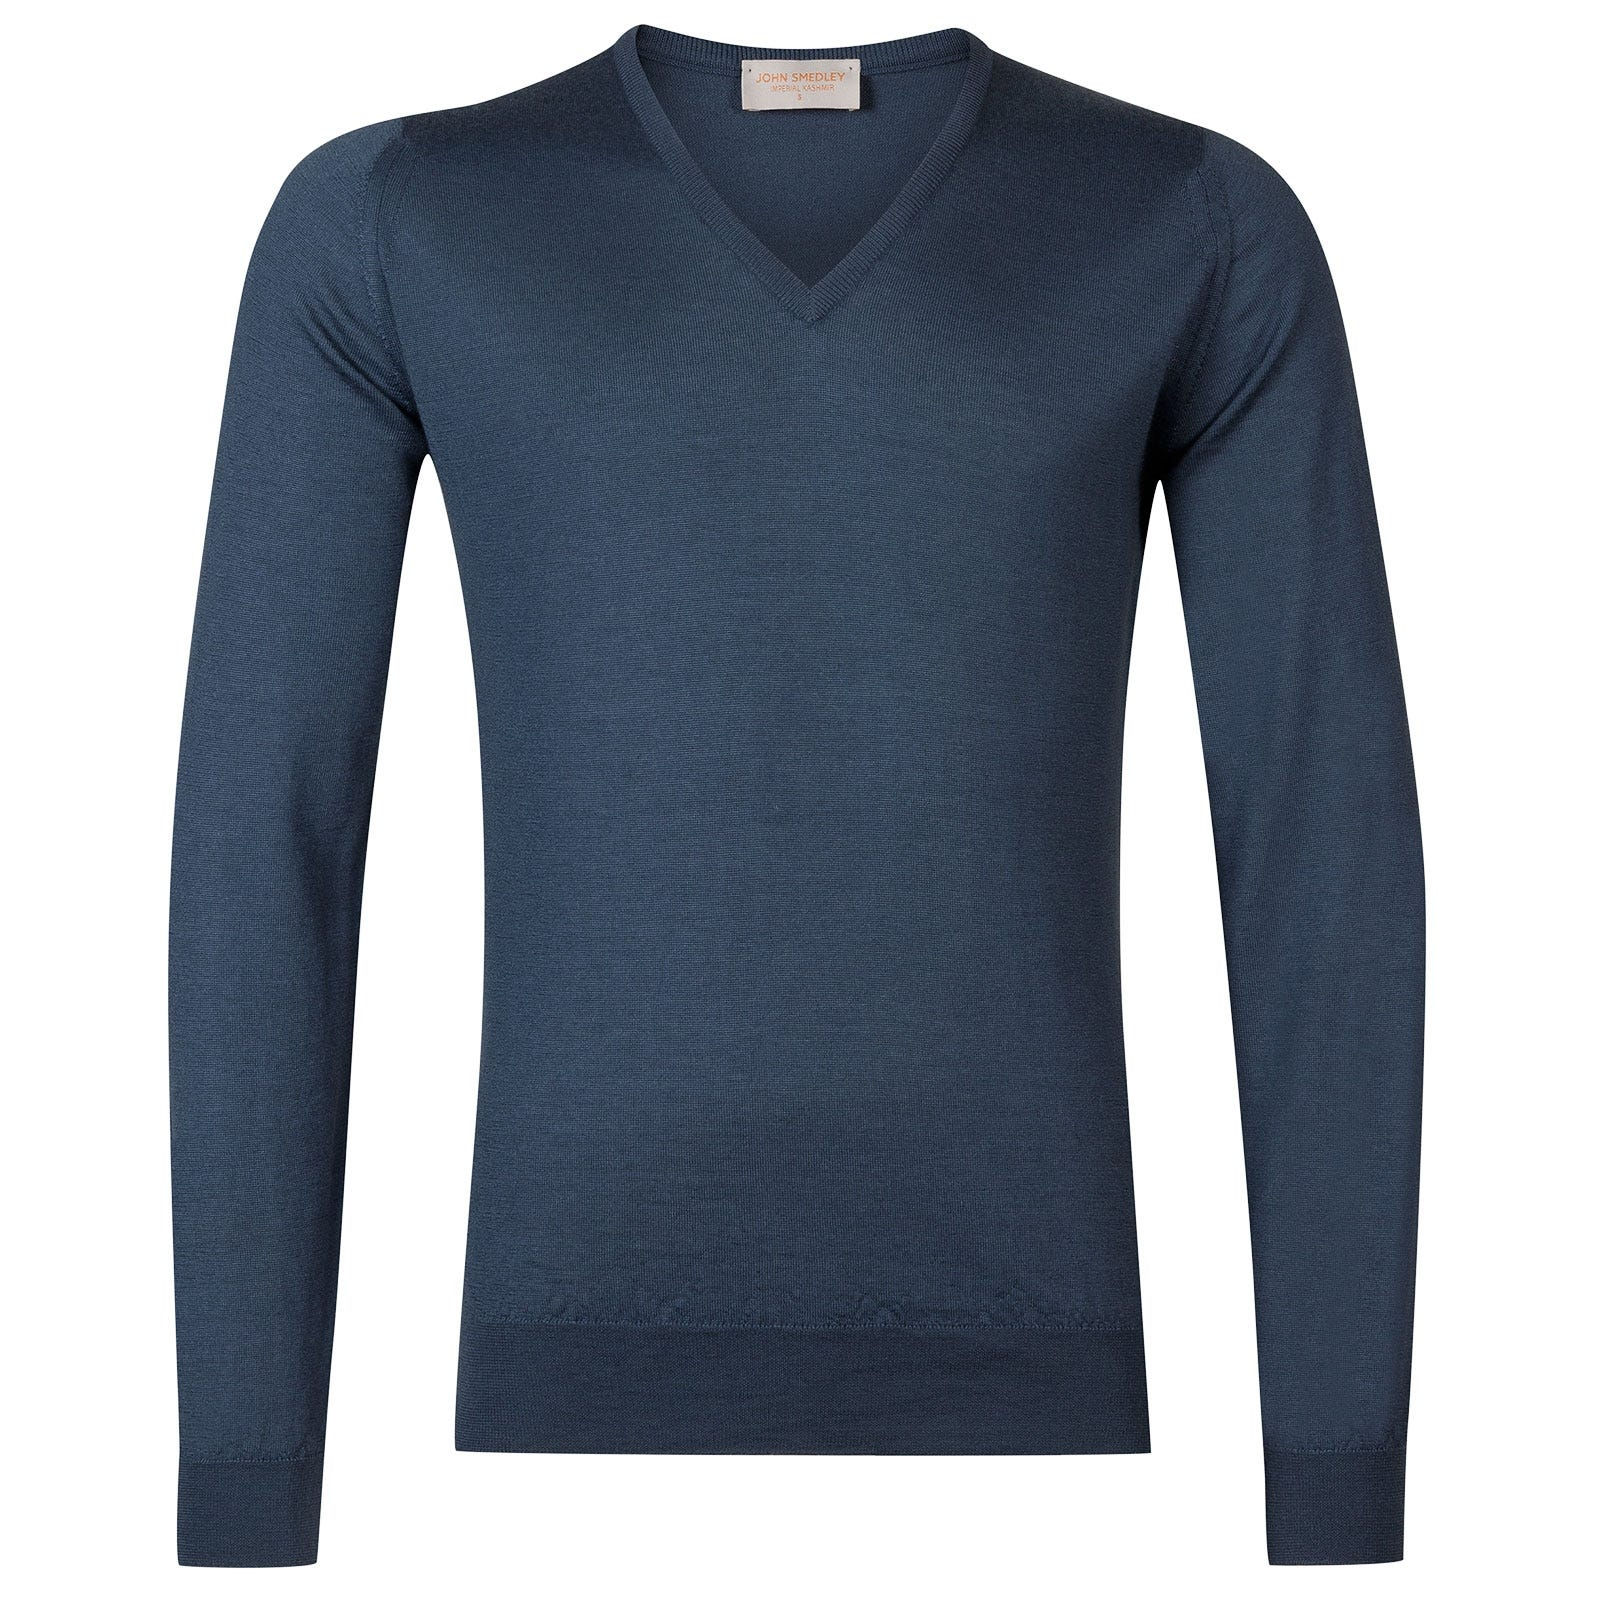 John Smedley Curlwell Cashmere and Silk Pullover in Teal-S